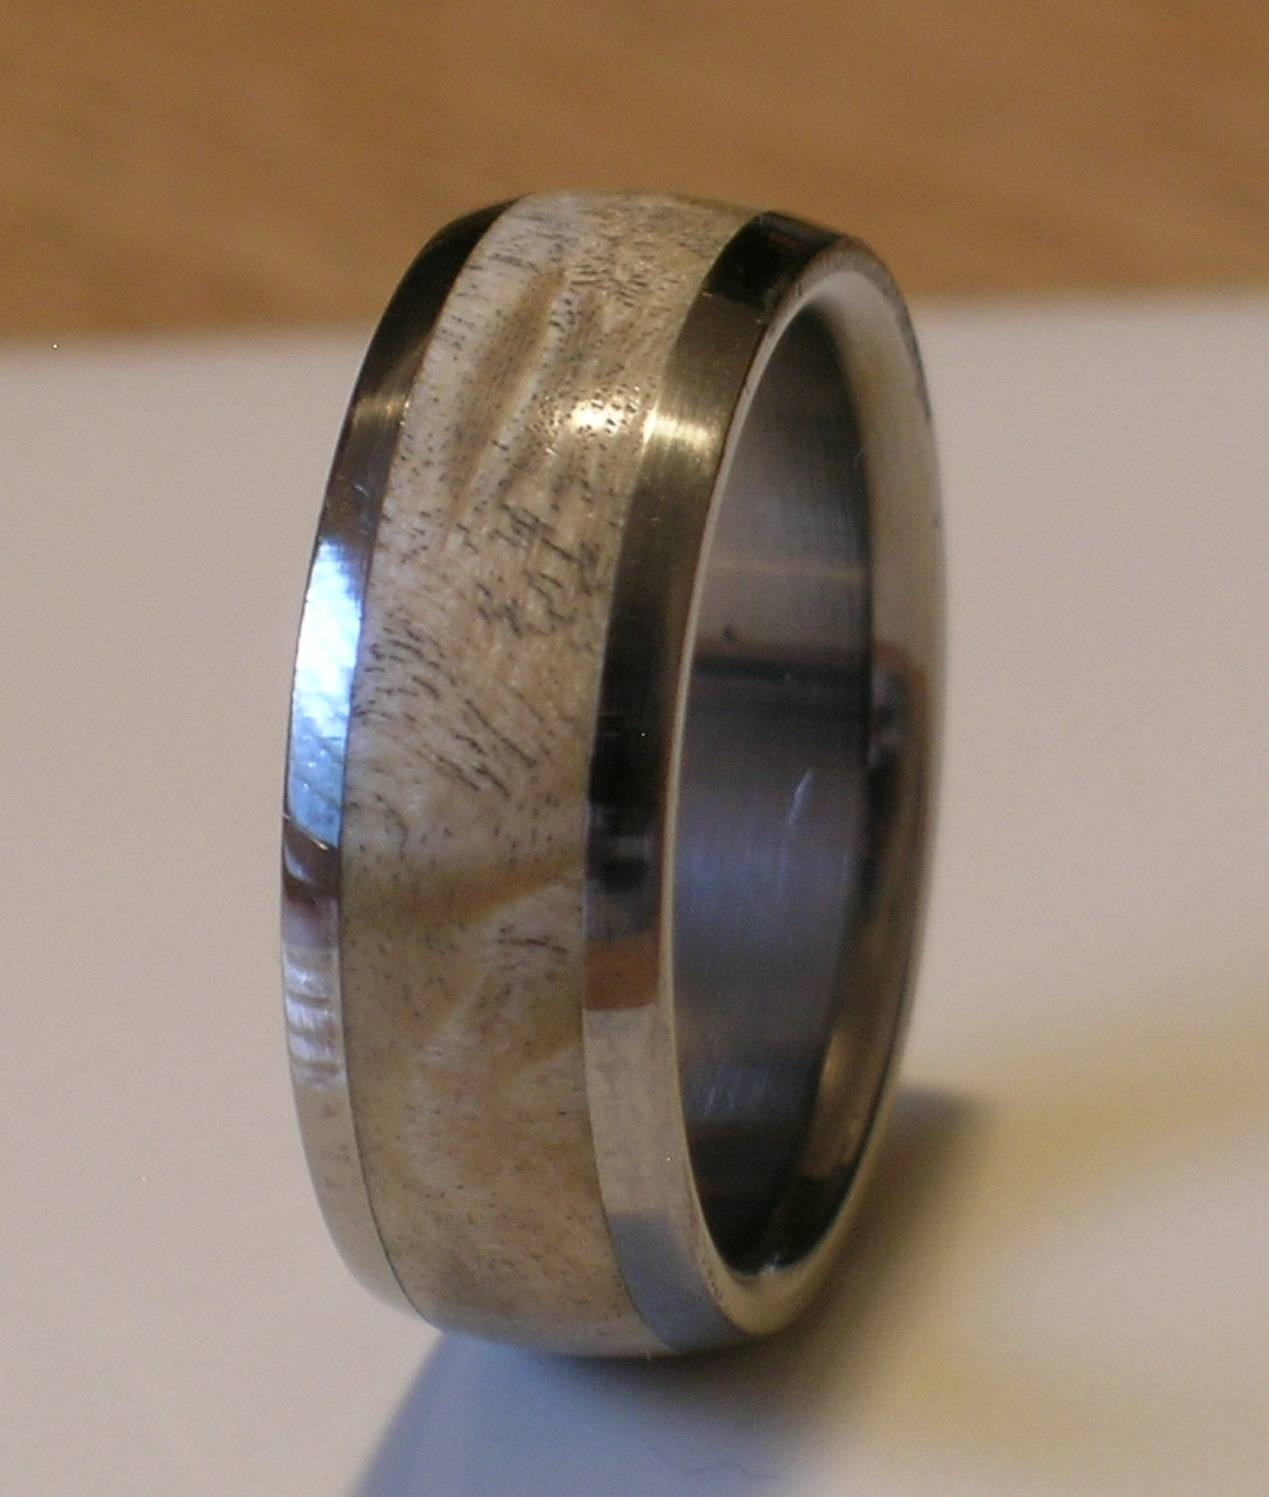 Loyalty Symbol Of Unique Mens Wedding Bands | Wedding Ideas Regarding Creative Mens Wedding Rings (Gallery 9 of 15)